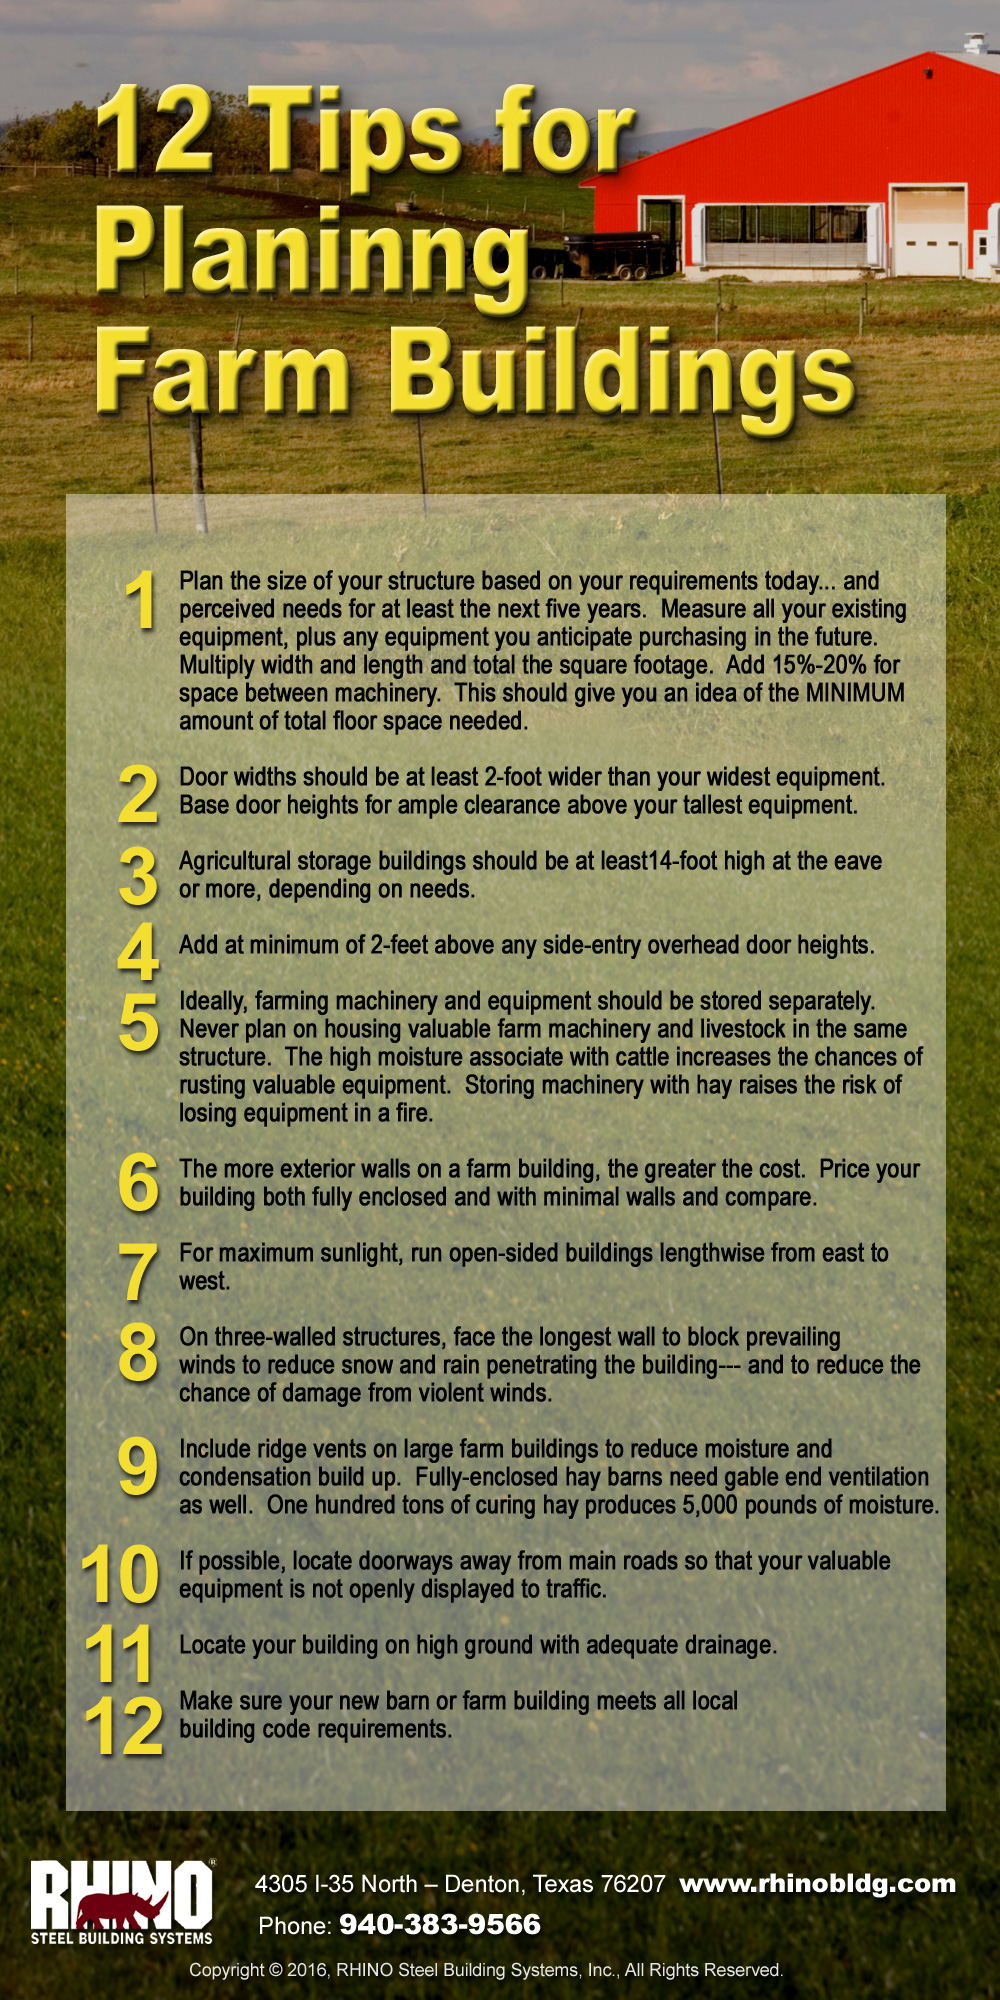 RHINO Steel Buildings infographic showing 12 Tips for Planning Farm Buildings